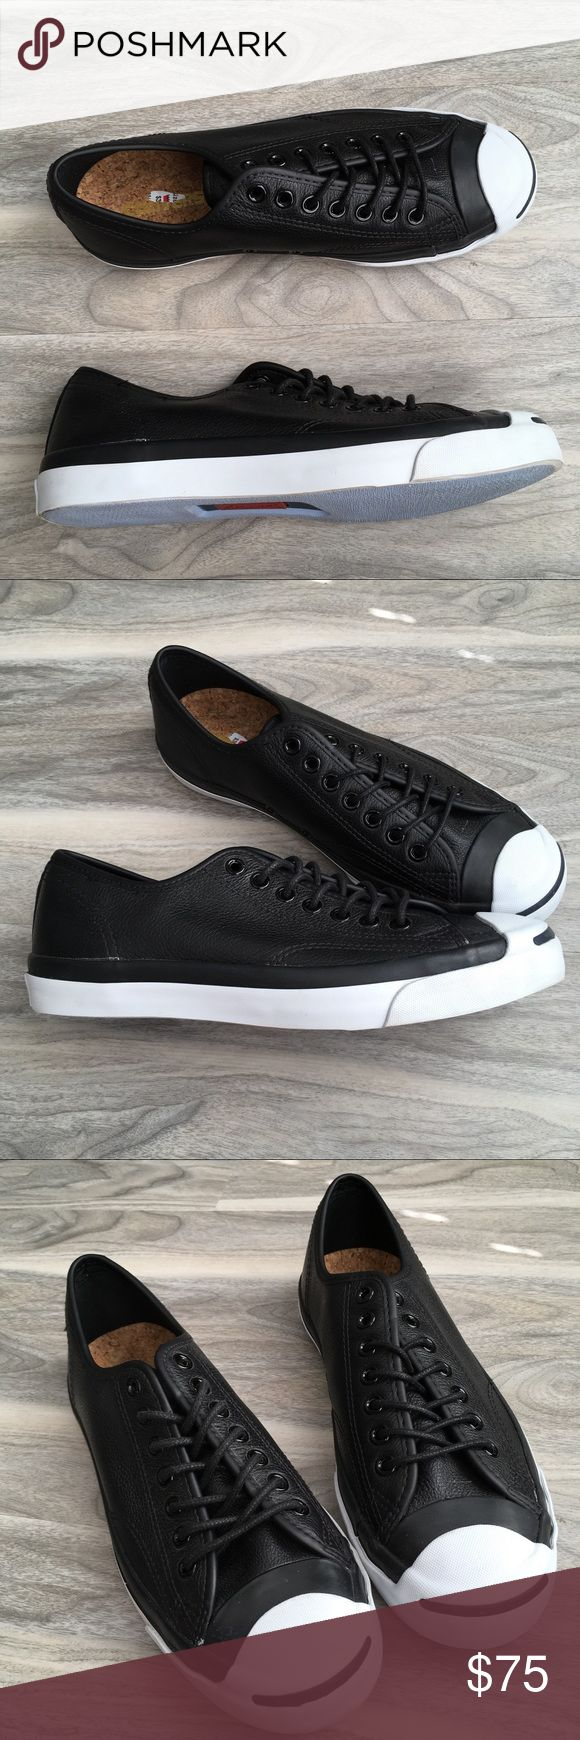 Converse Jack Purcell black ox leather 9 like new Converse Jack Purcell Jack Ox Leather Athletic Shoes 9 like new. The right side was on display so it has debris. Please inspect pics carefully. Tumbled leather upper EVA sockliner Rubber outsole. Women 9/Men's 7 Converse Shoes Sneakers